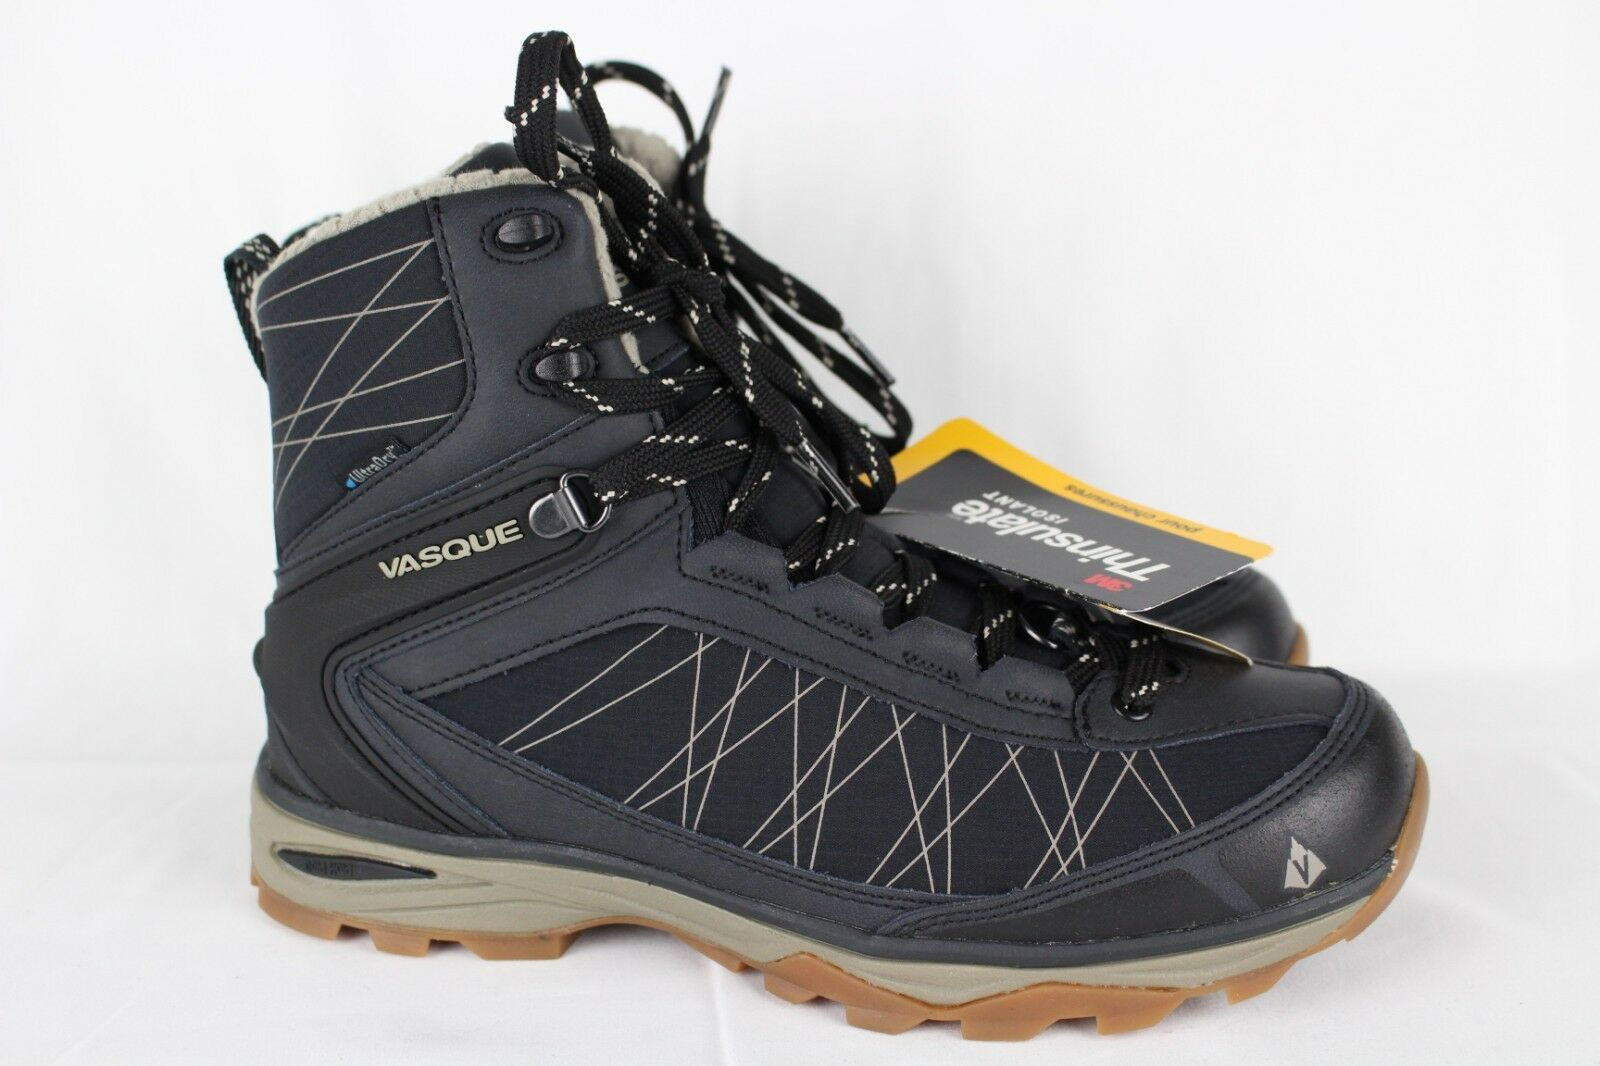 Vasque Women's Coldspark Ultradry Insulated Boots 8.5 Anthracite Aluminum 7827